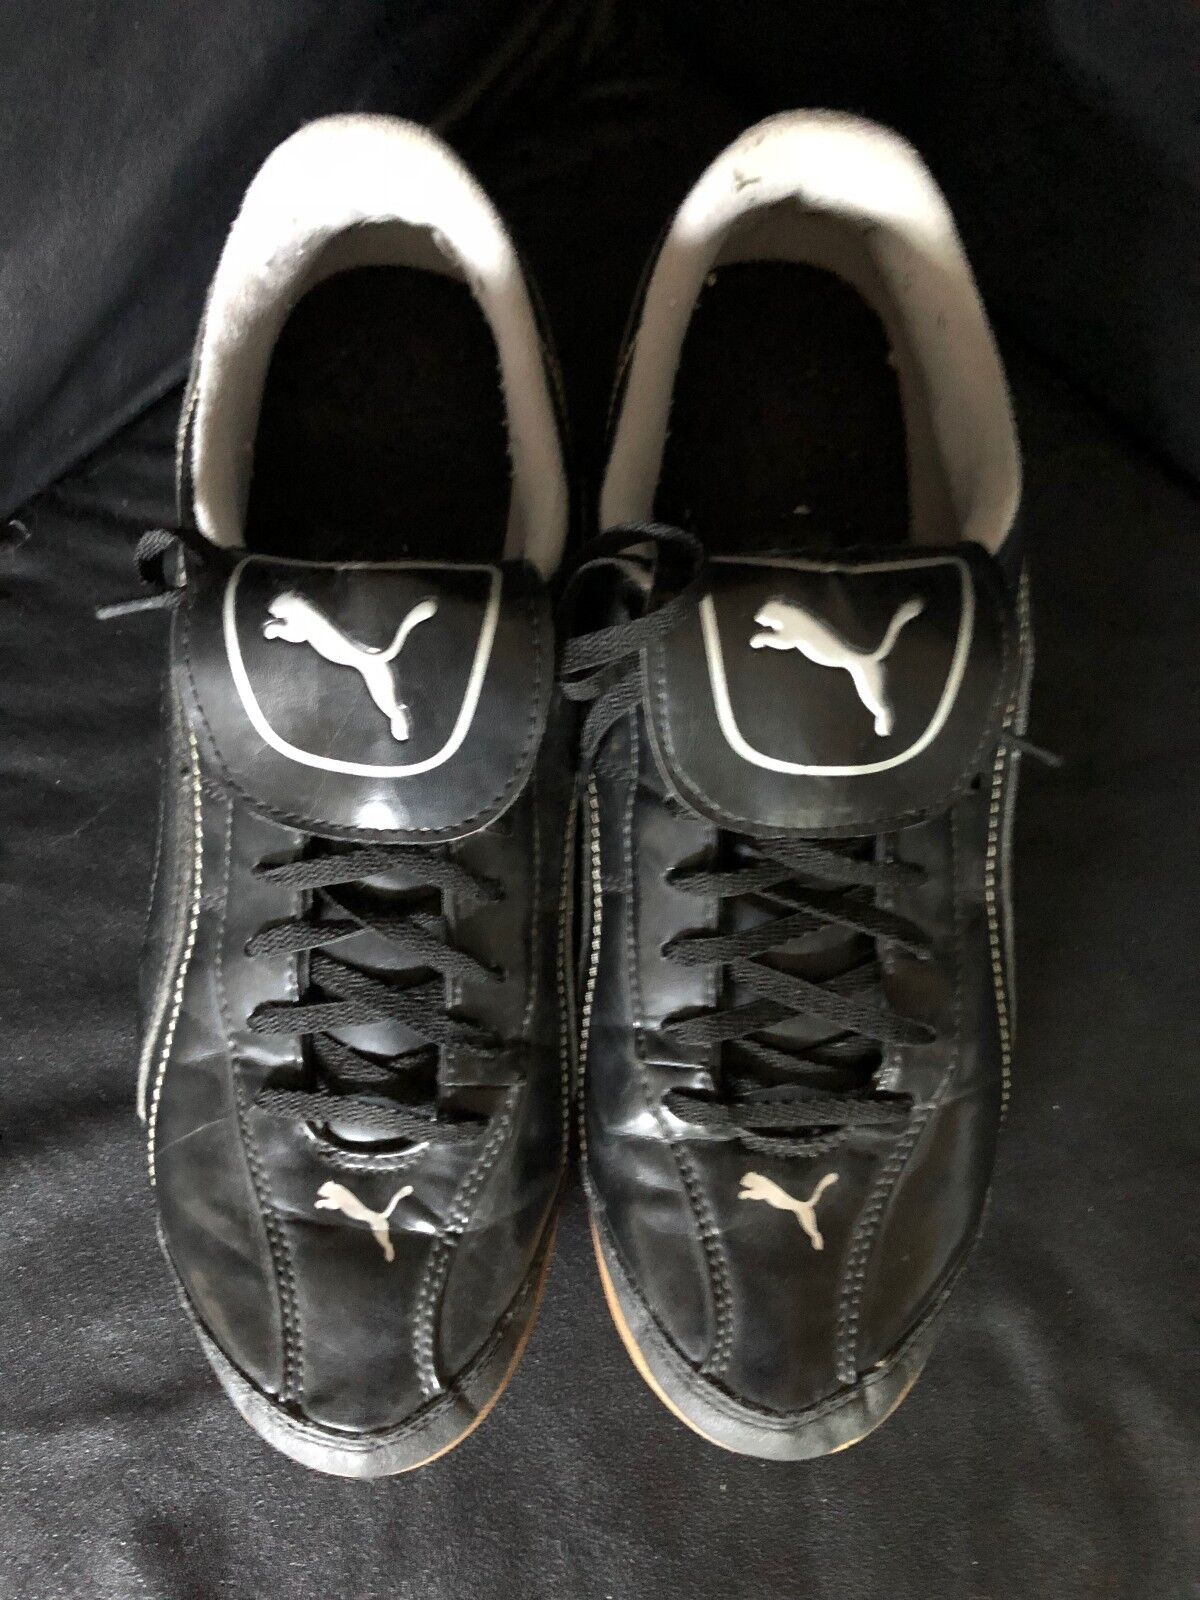 New Puma Mens Black 12 Lace Up Sneakers Shoes with Free Shipping